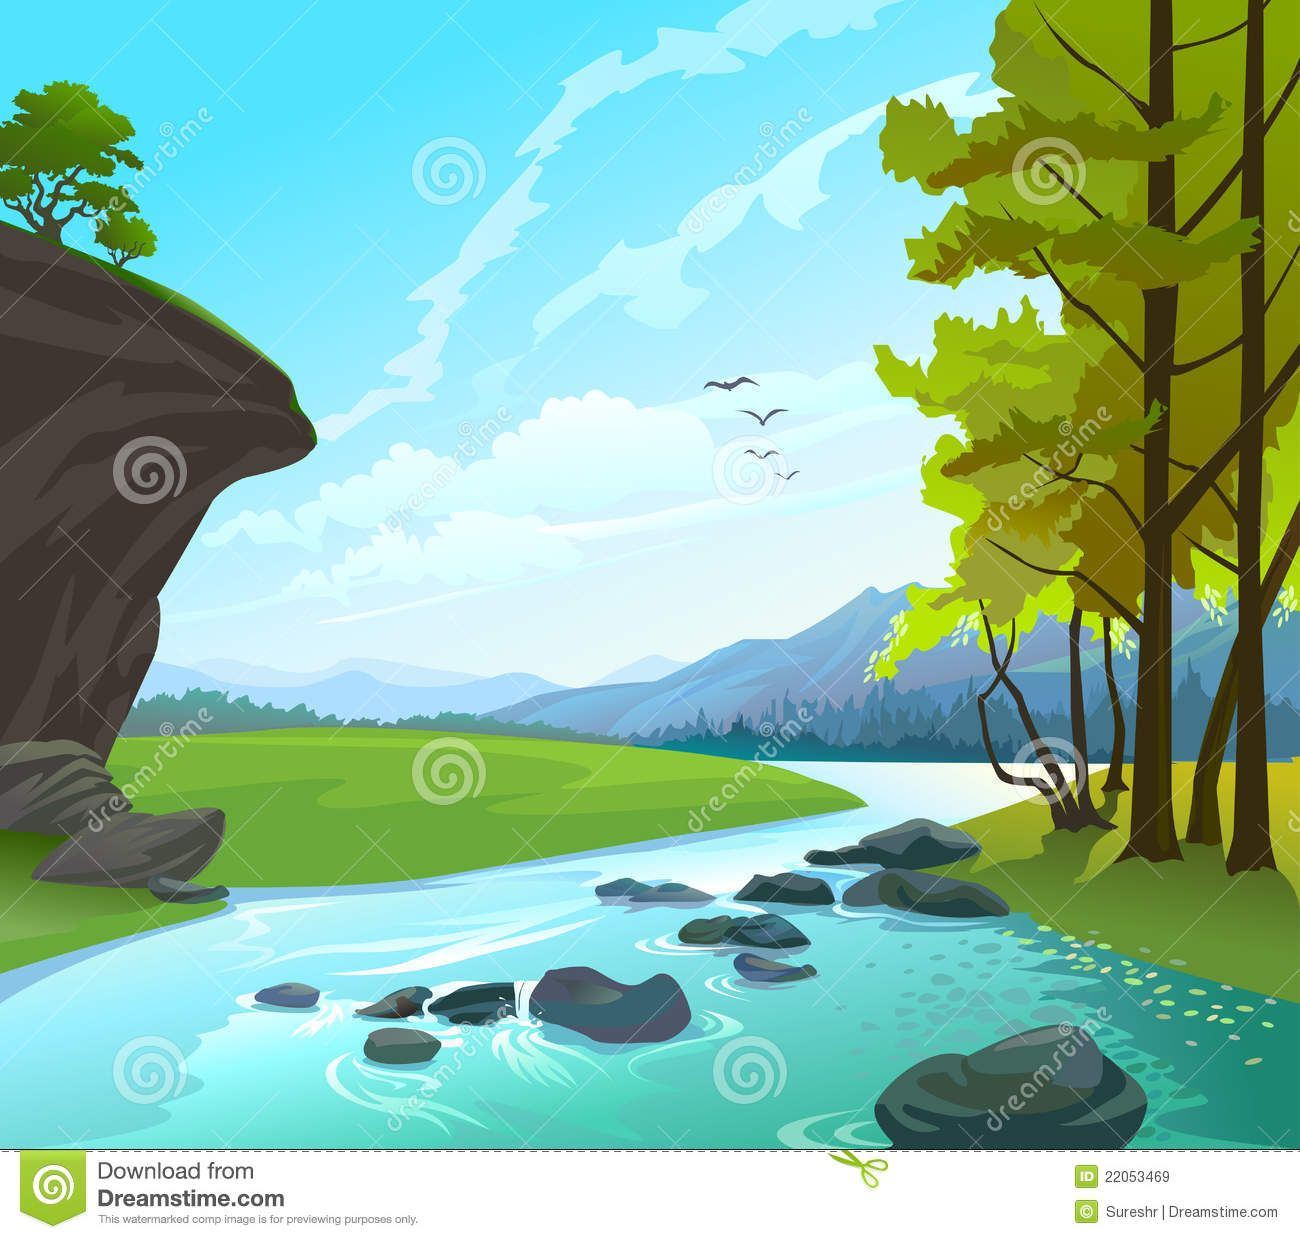 Rock clipart landscape. River rocks design work